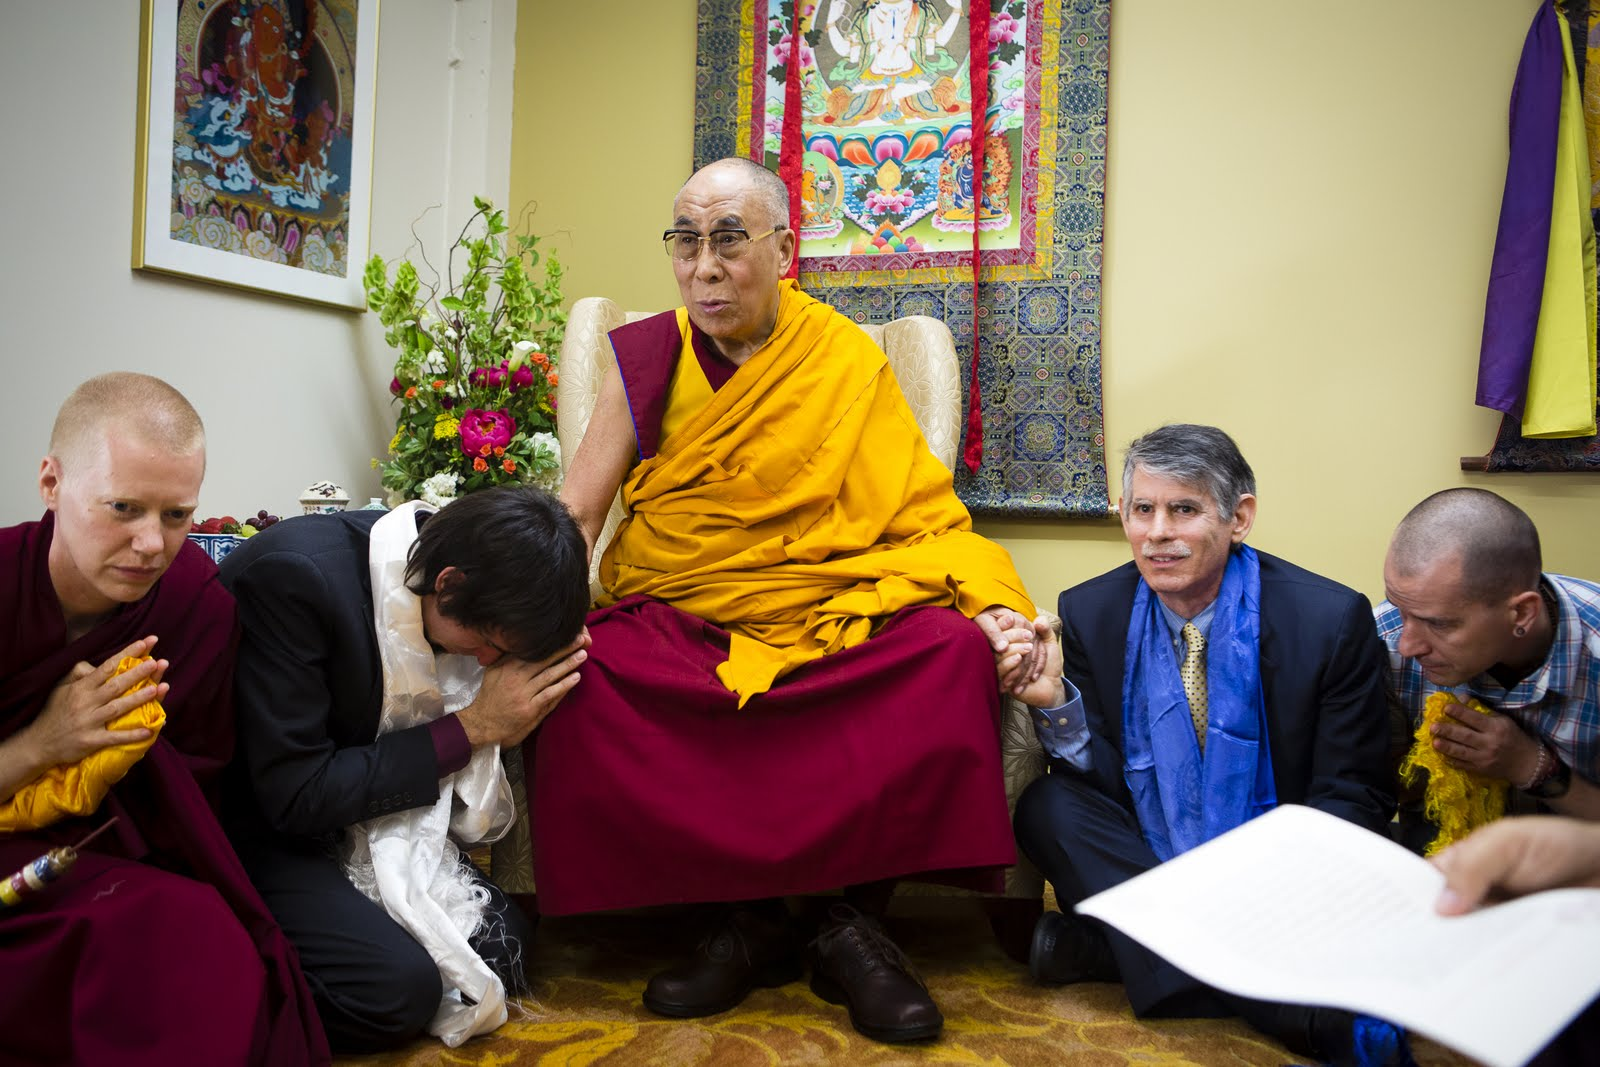 Ven. Holly Ansett, Tenzin Ösel Hita, His Holiness the Dalai Lama, FPMT International Office Director of Operations and Director of FPMT Education Services Tom Truty. Photo by Leah Nash.